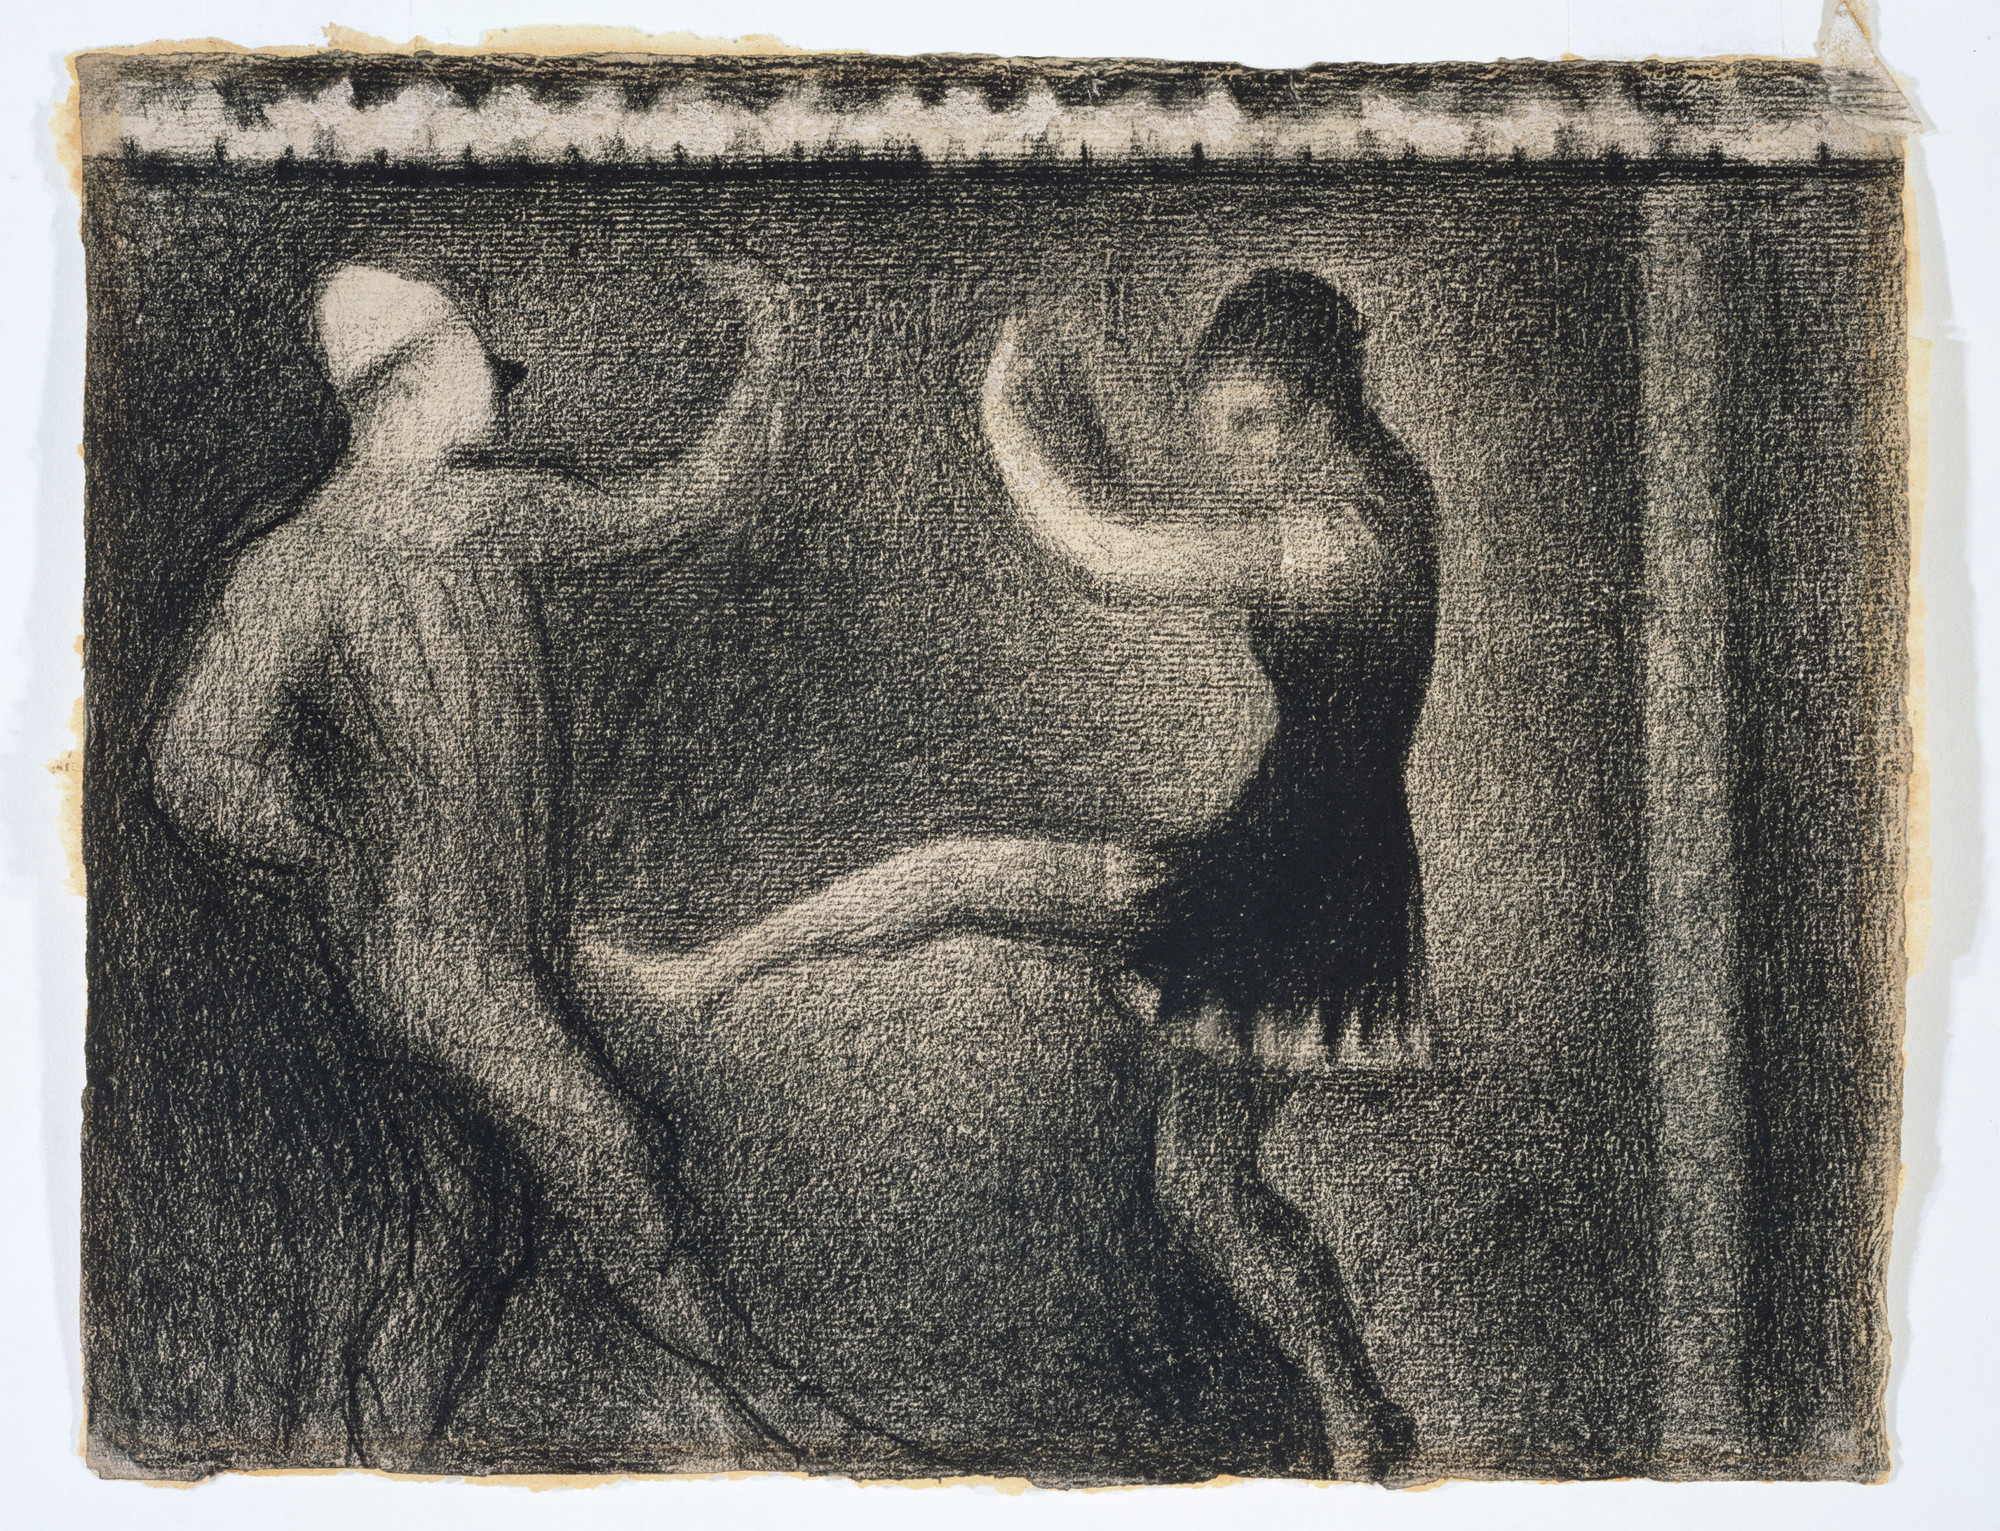 Georges Seurat. Pierrot and Colombine. c. 1887–88. Conté crayon on paper, 9 3⁄4 × 12 5/16″ (24.8 × 31.2 cm). The Kasama Nichido Museum of Art